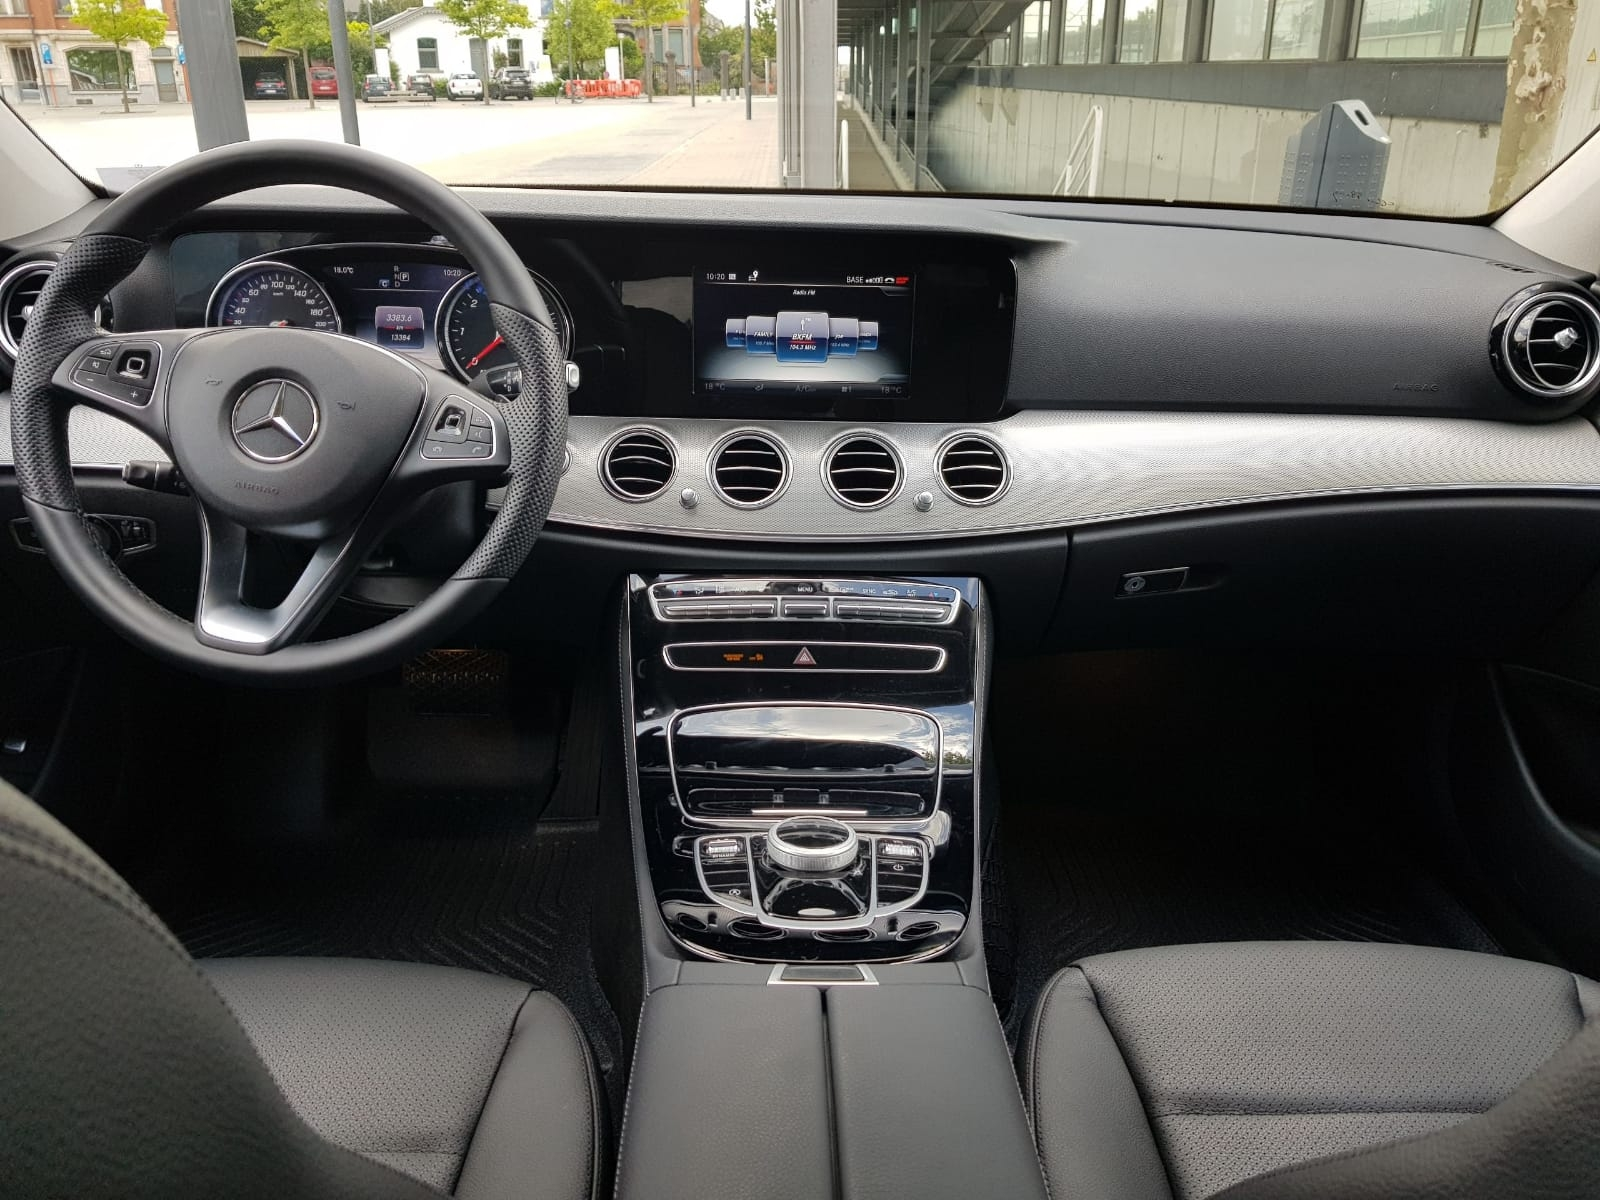 Meredes-E-class-interior-front